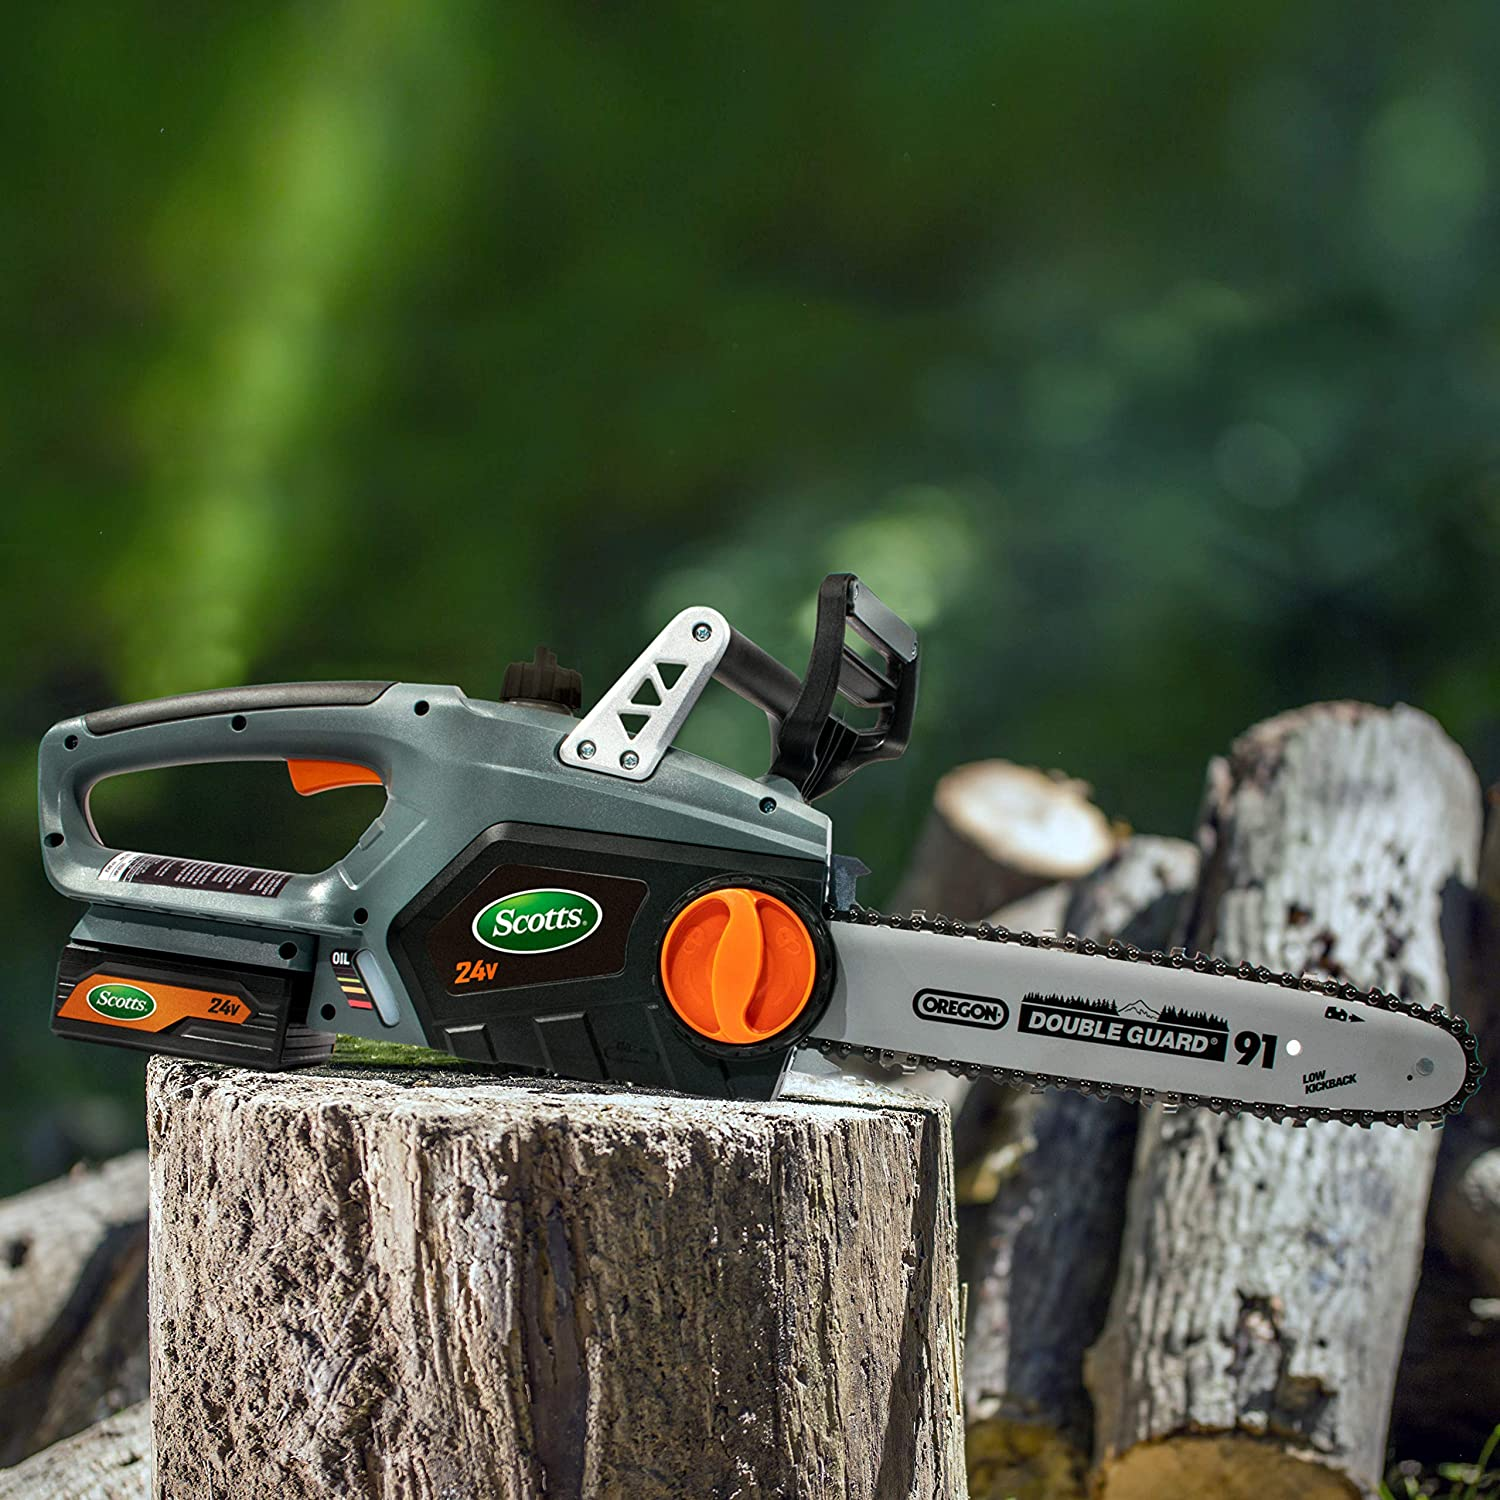 Scotts Outdoor Power Tools LCS31224S featured image 9